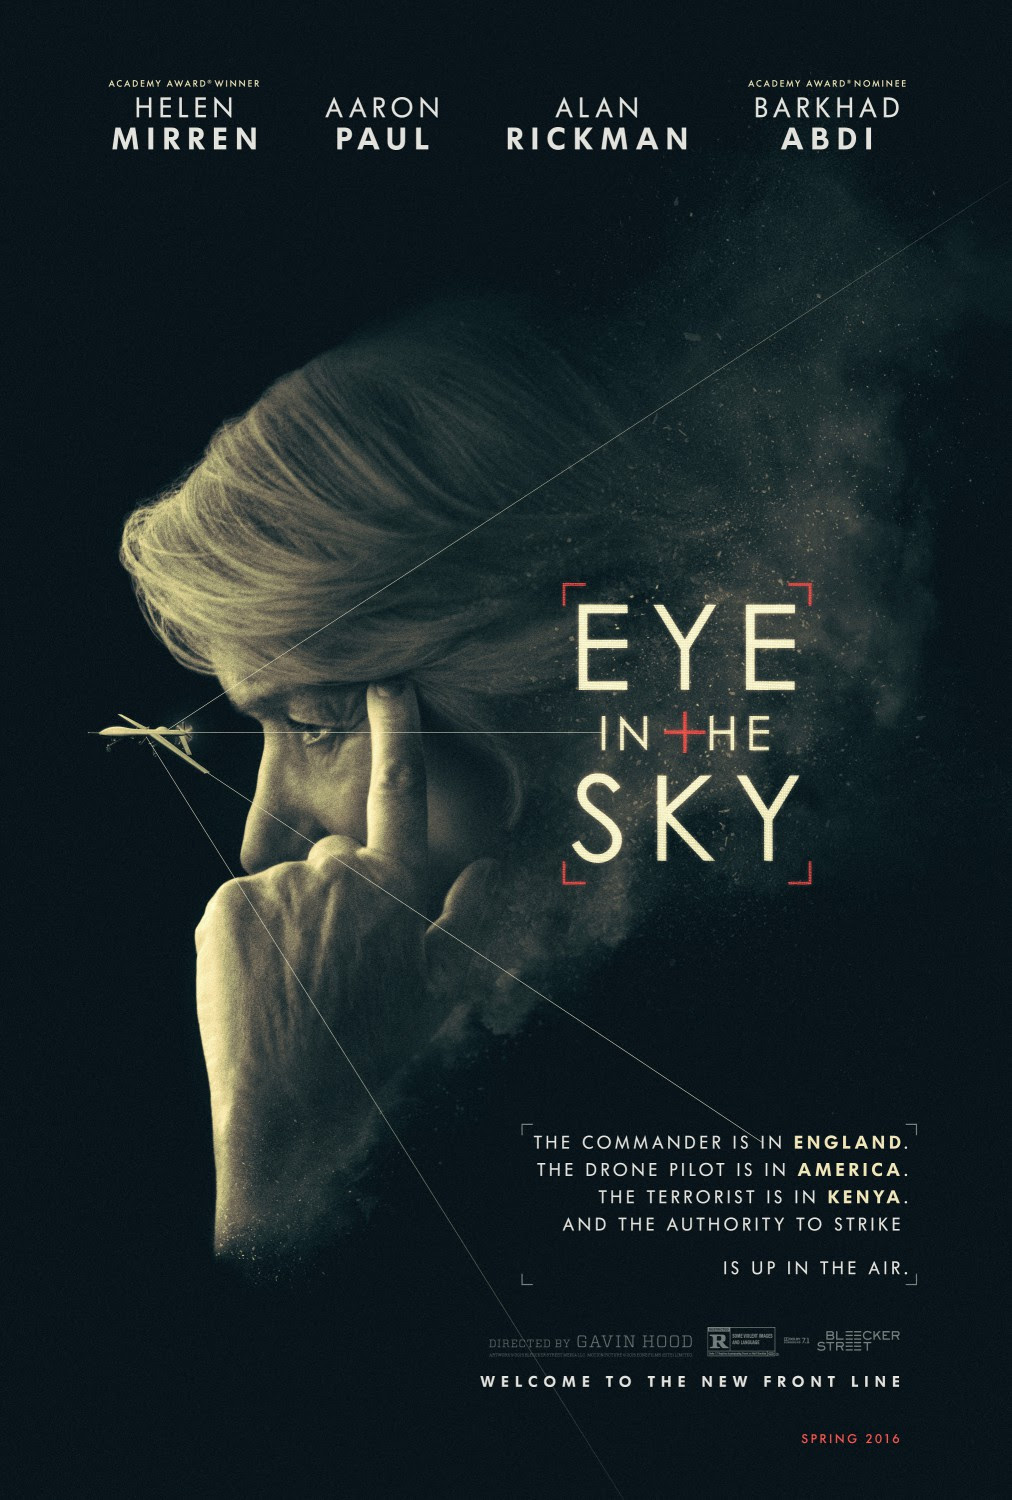 Resultado de imagem para movie poster eye in the sky